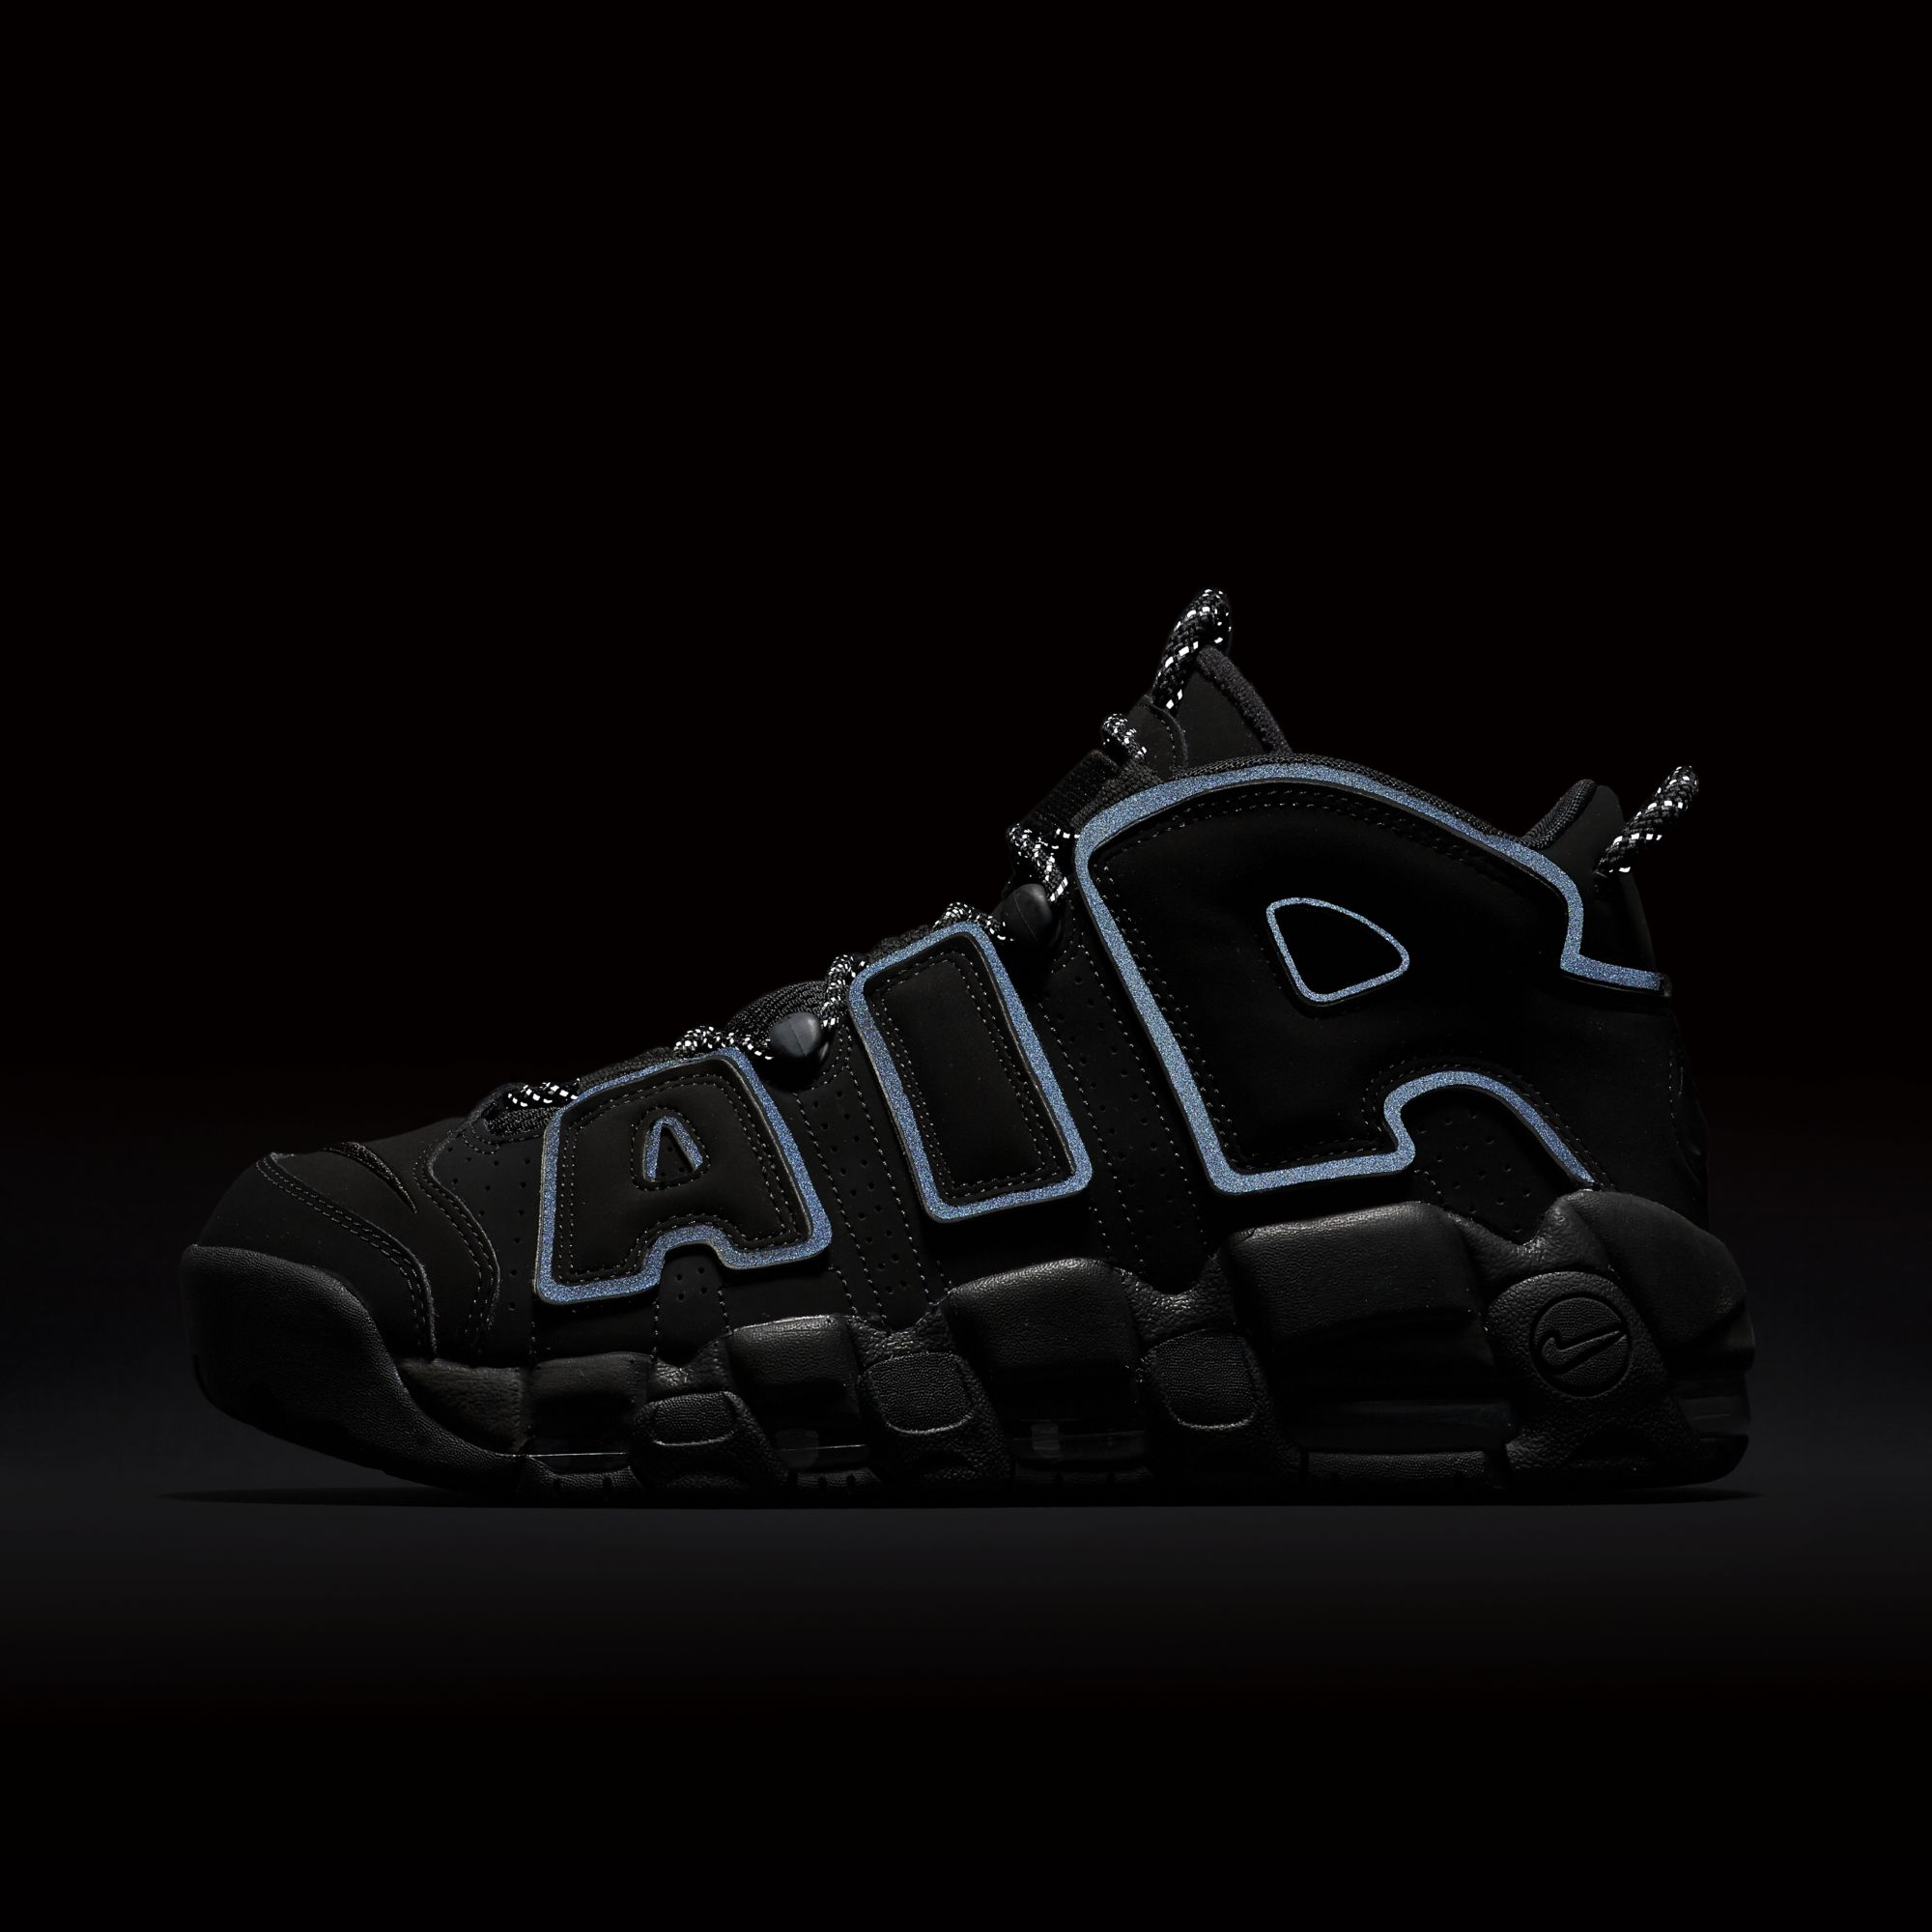 pizarra Inflar Crítico  The Nike Air More Uptempo in Triple Black Will Arrive in March - WearTesters